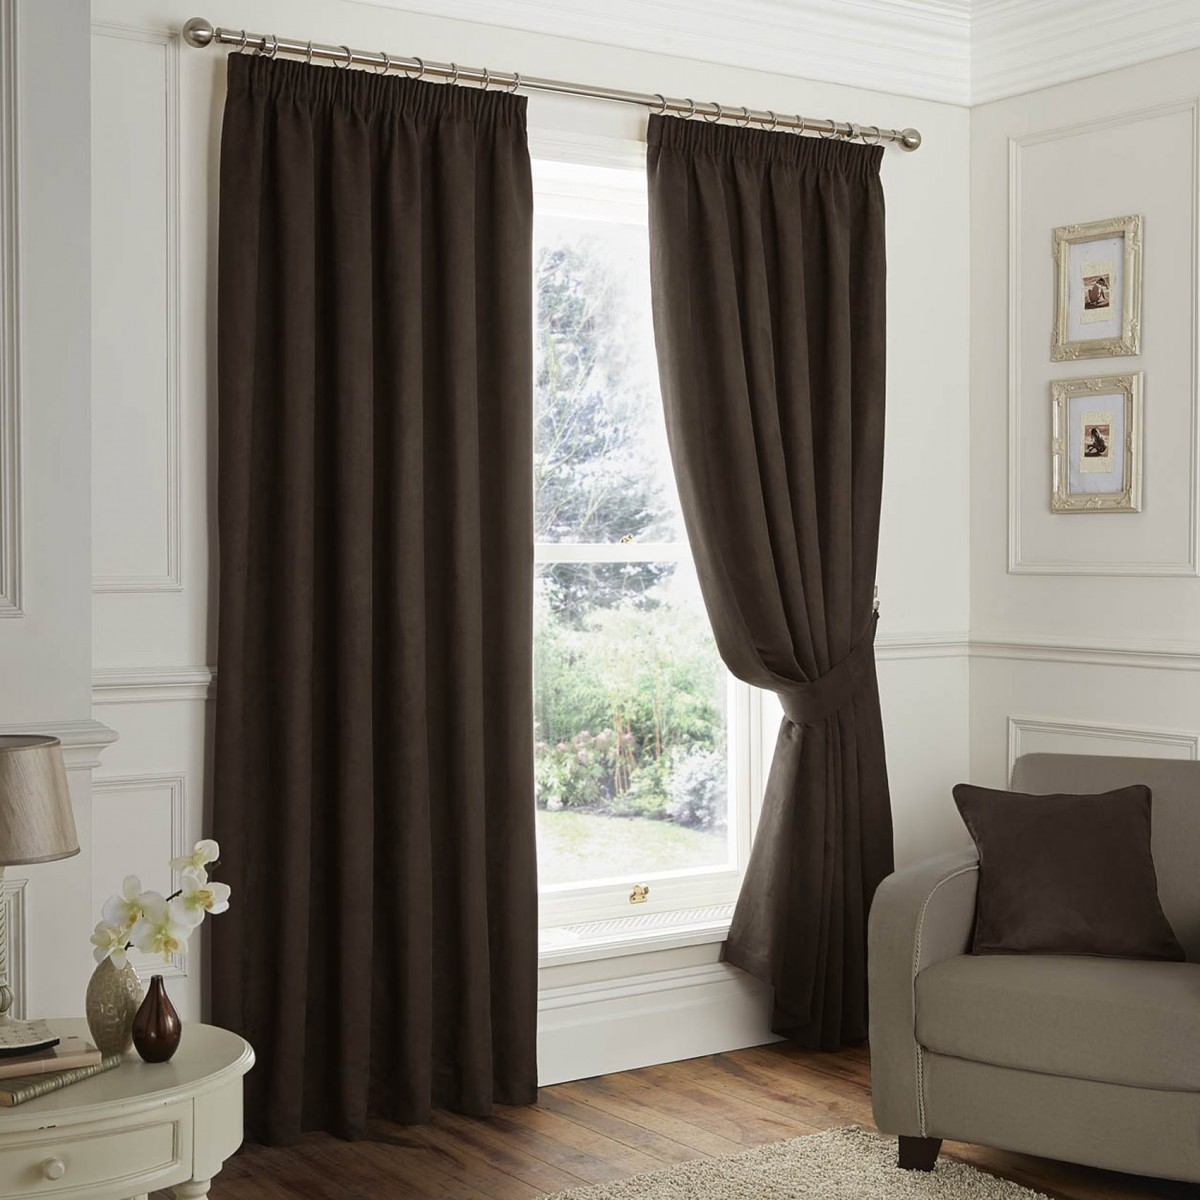 30% off faux suede blackout pencil pleat curtains - chocolate tyvlrlp